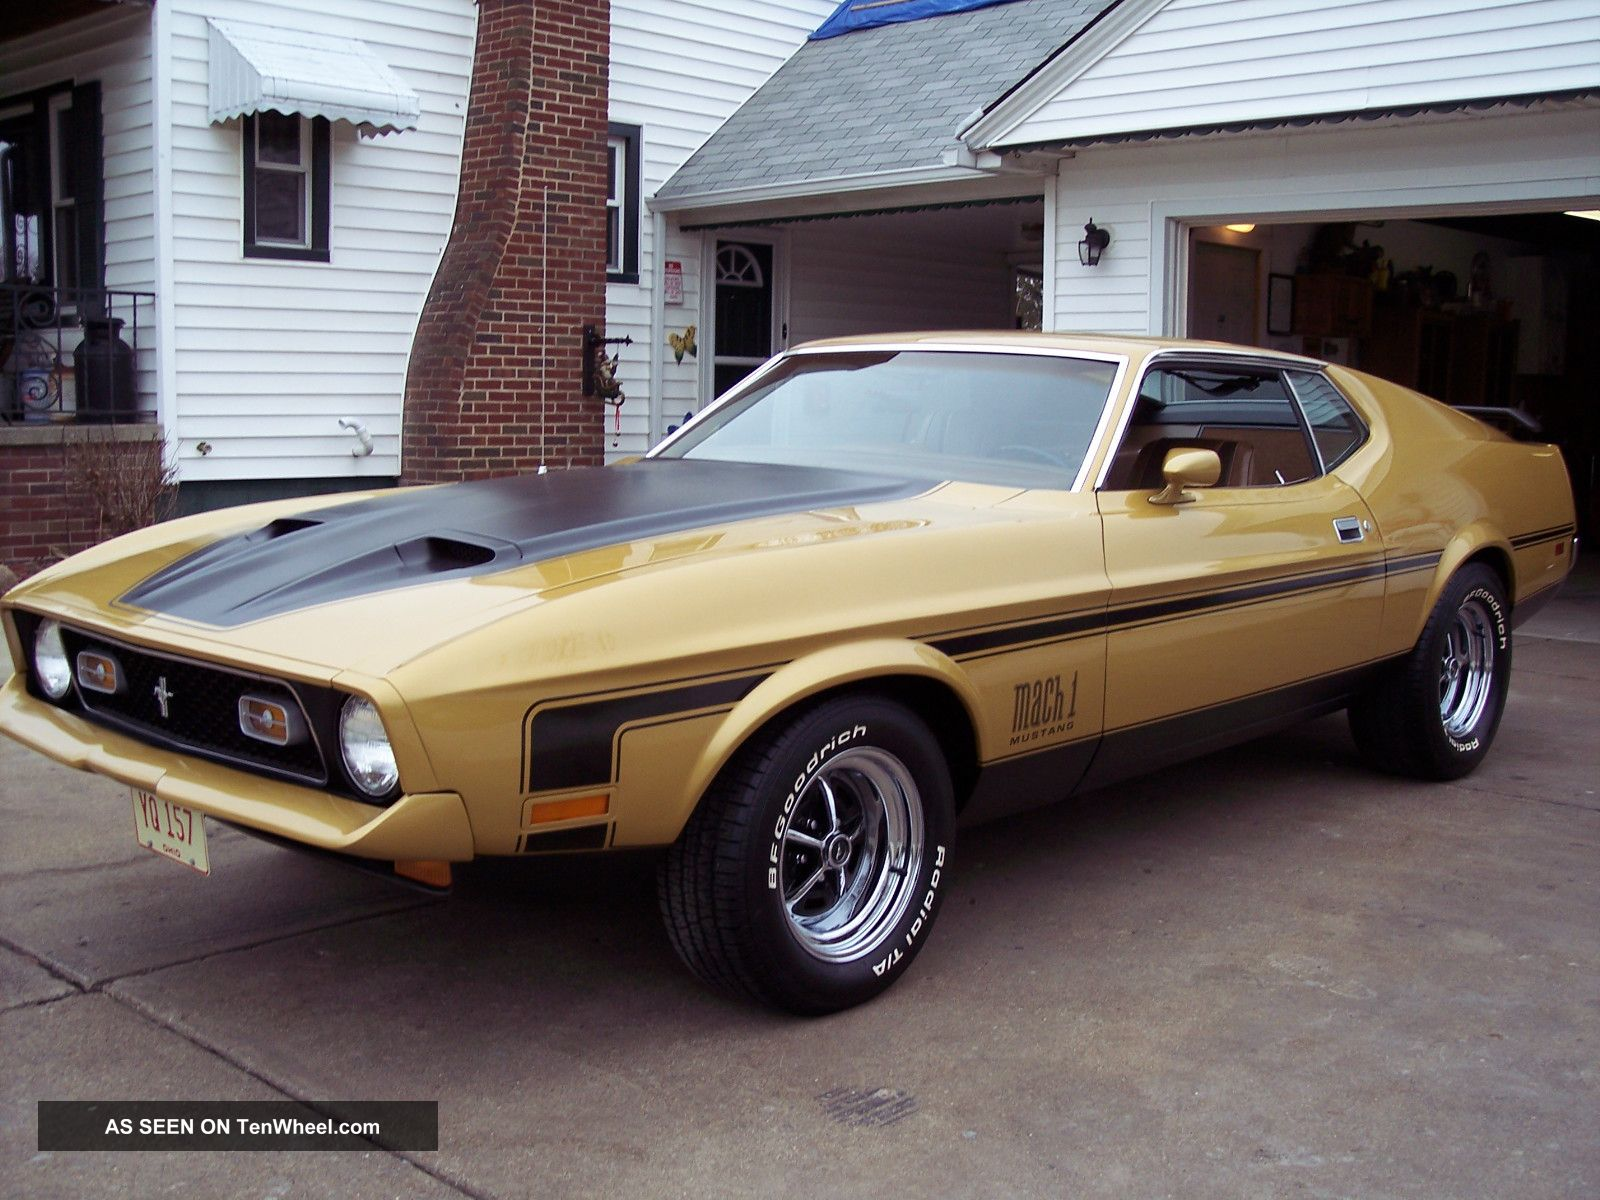 1972 Ford Mustang Mach 1 Q Code 351 Cobra Jet Nut And Bolt